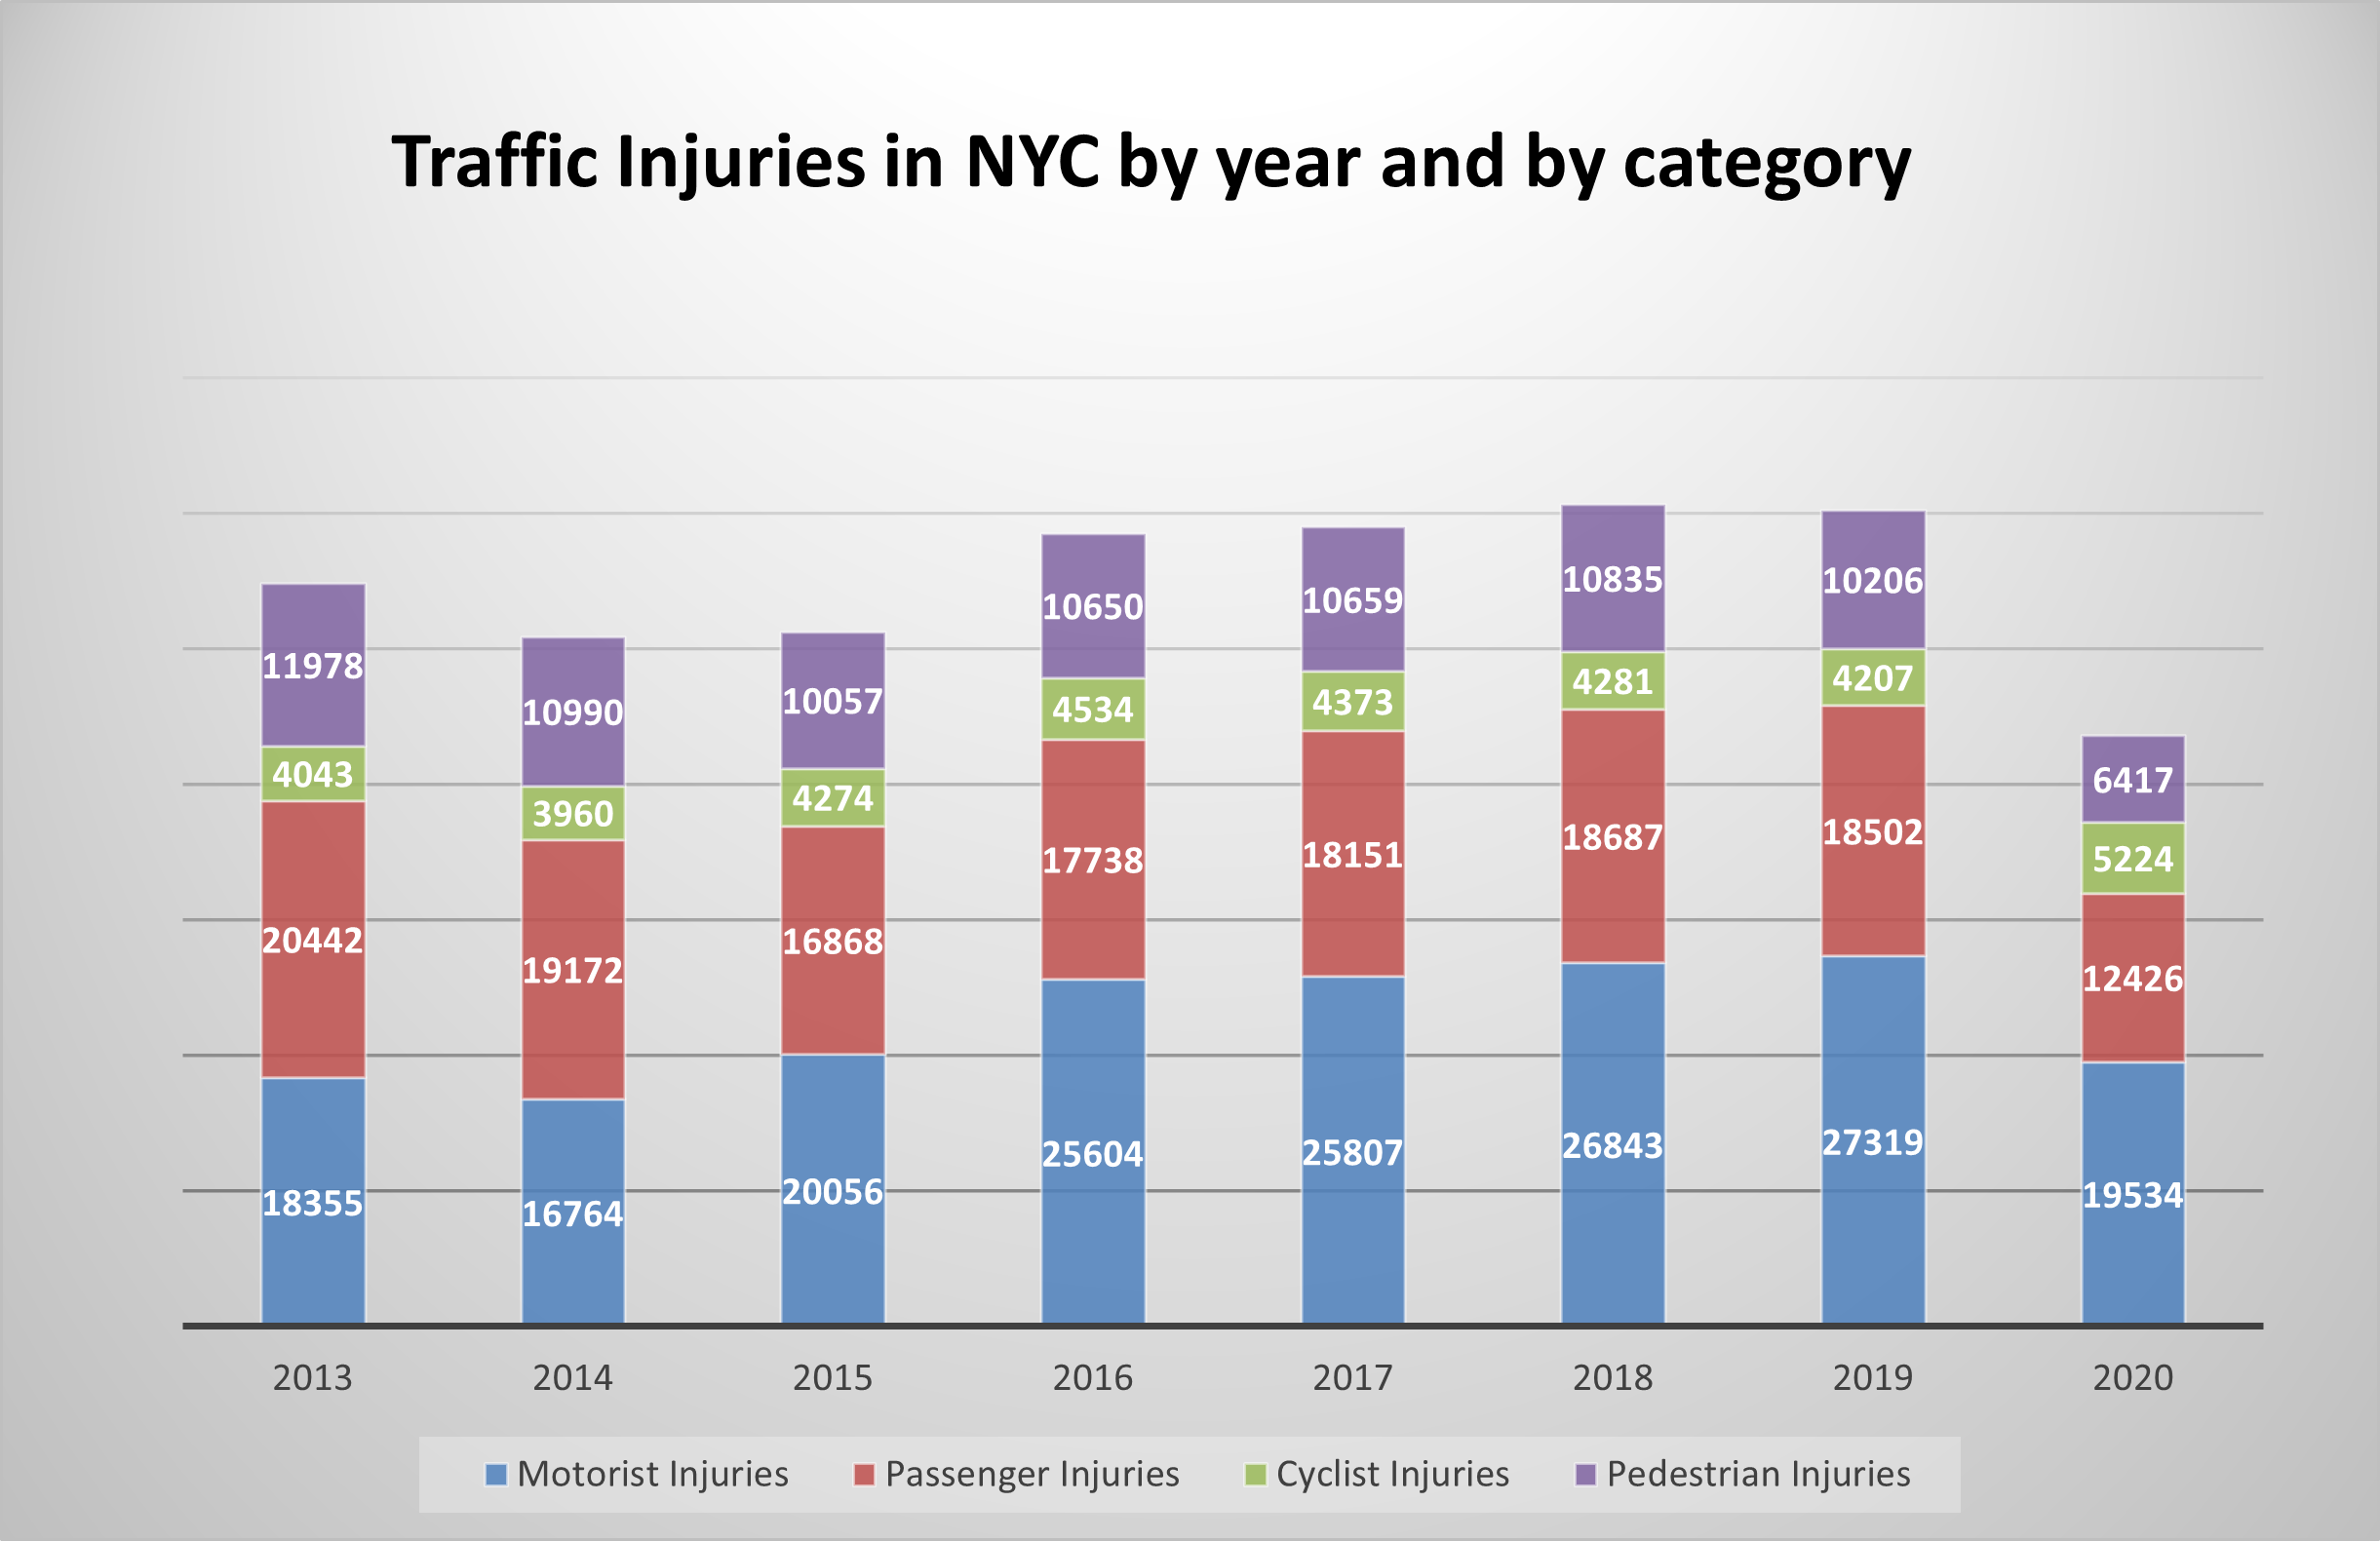 Motor-Vehicle-Accident-Injuries-in-NYC-in-20202